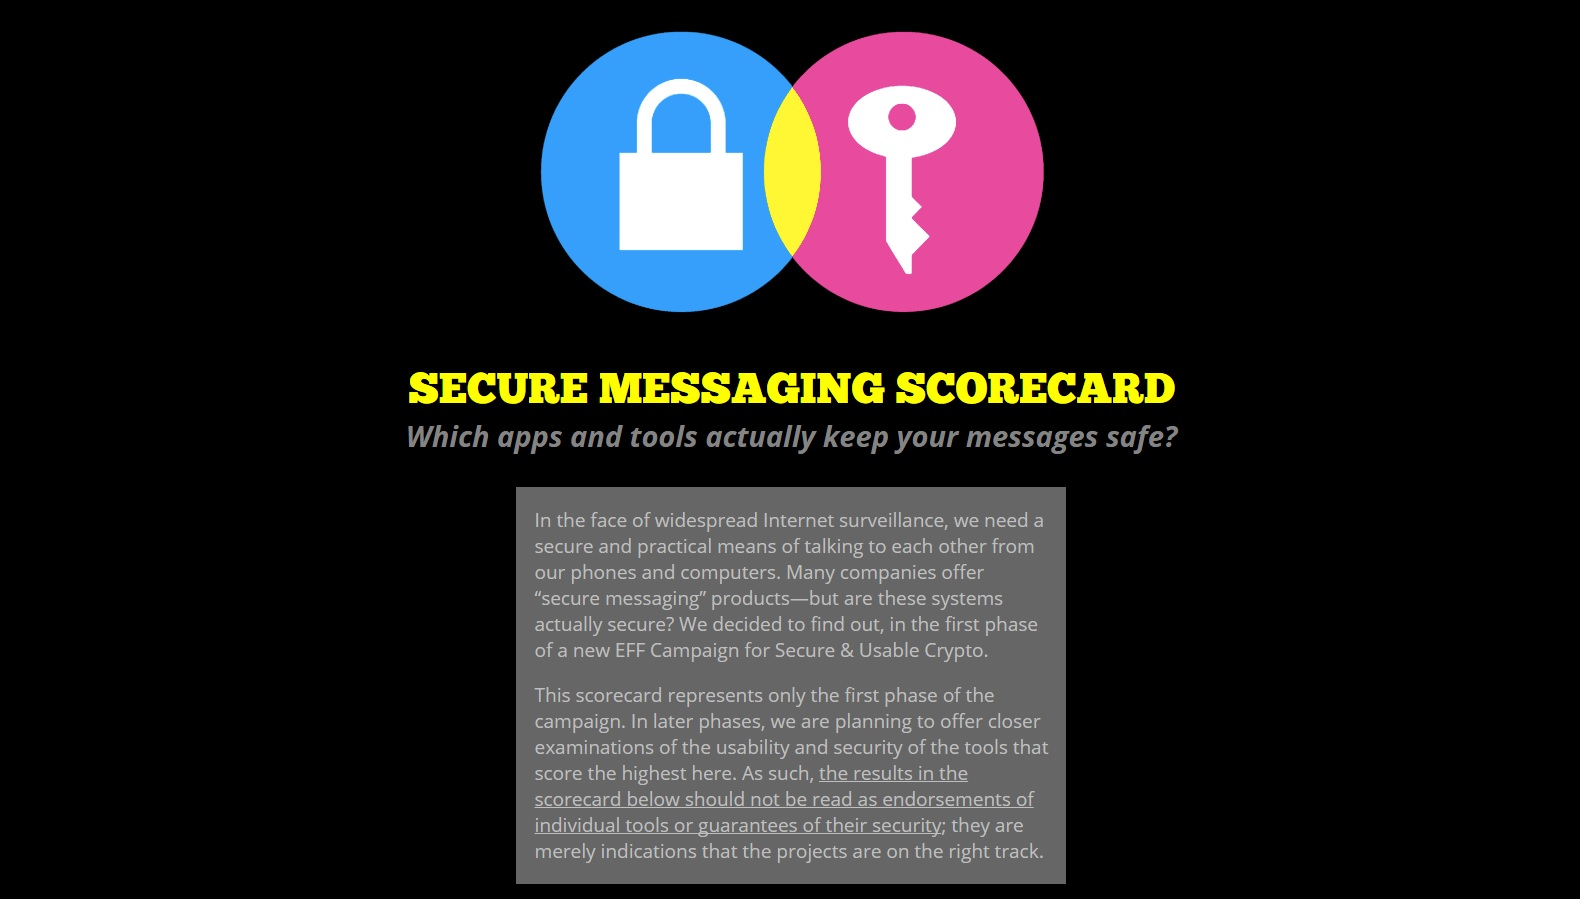 EFF Secure Messaging Scorecard